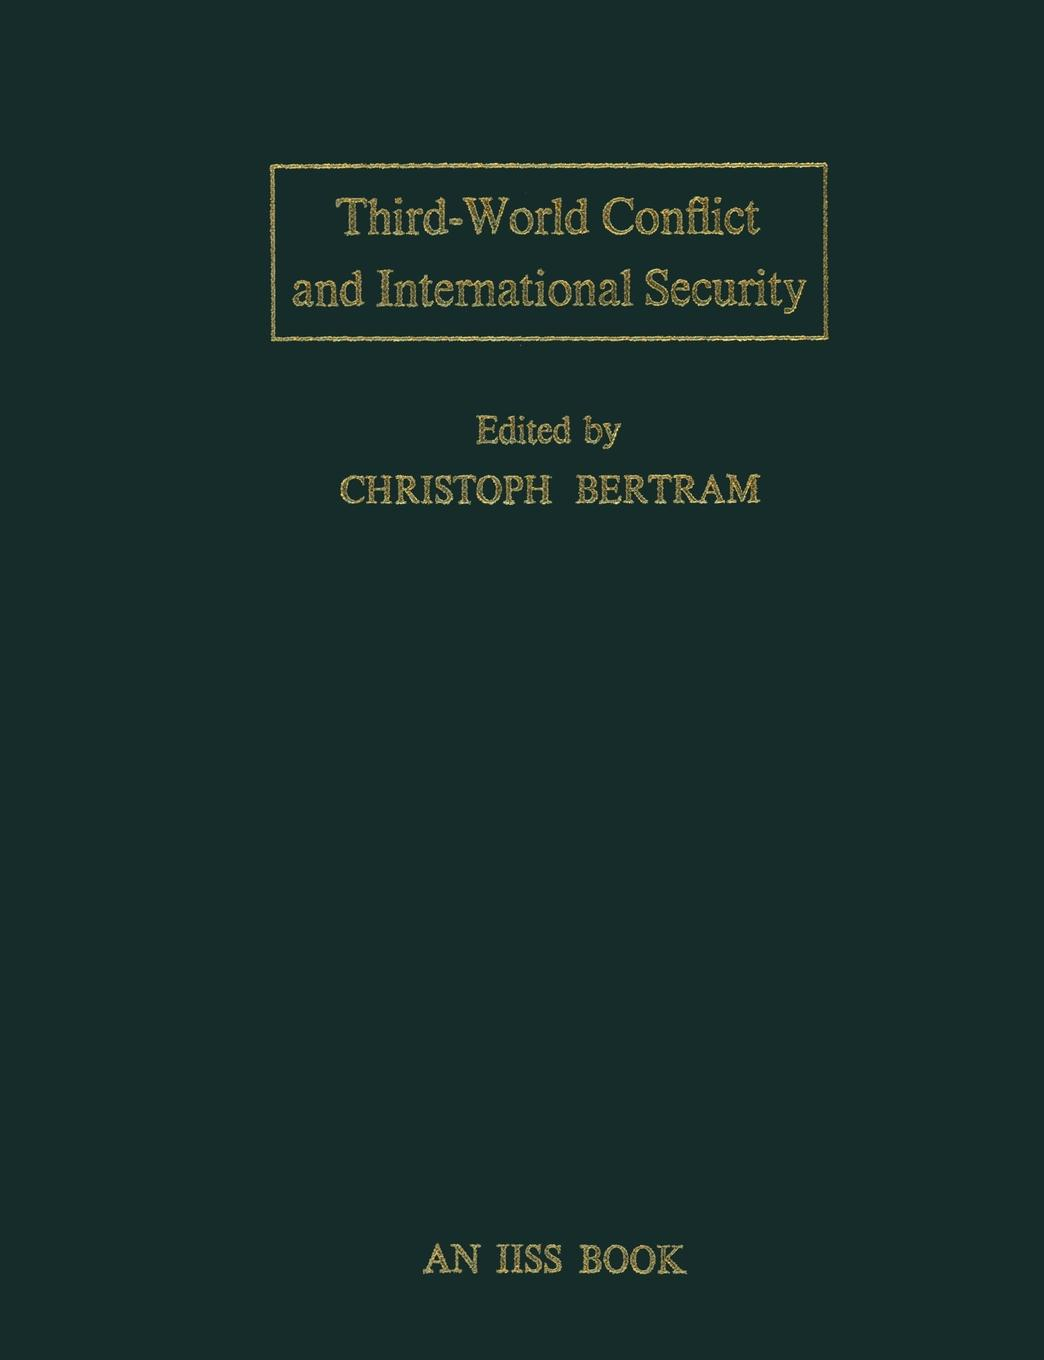 Third-World Conflict and International Security nicole detraz international security and gender